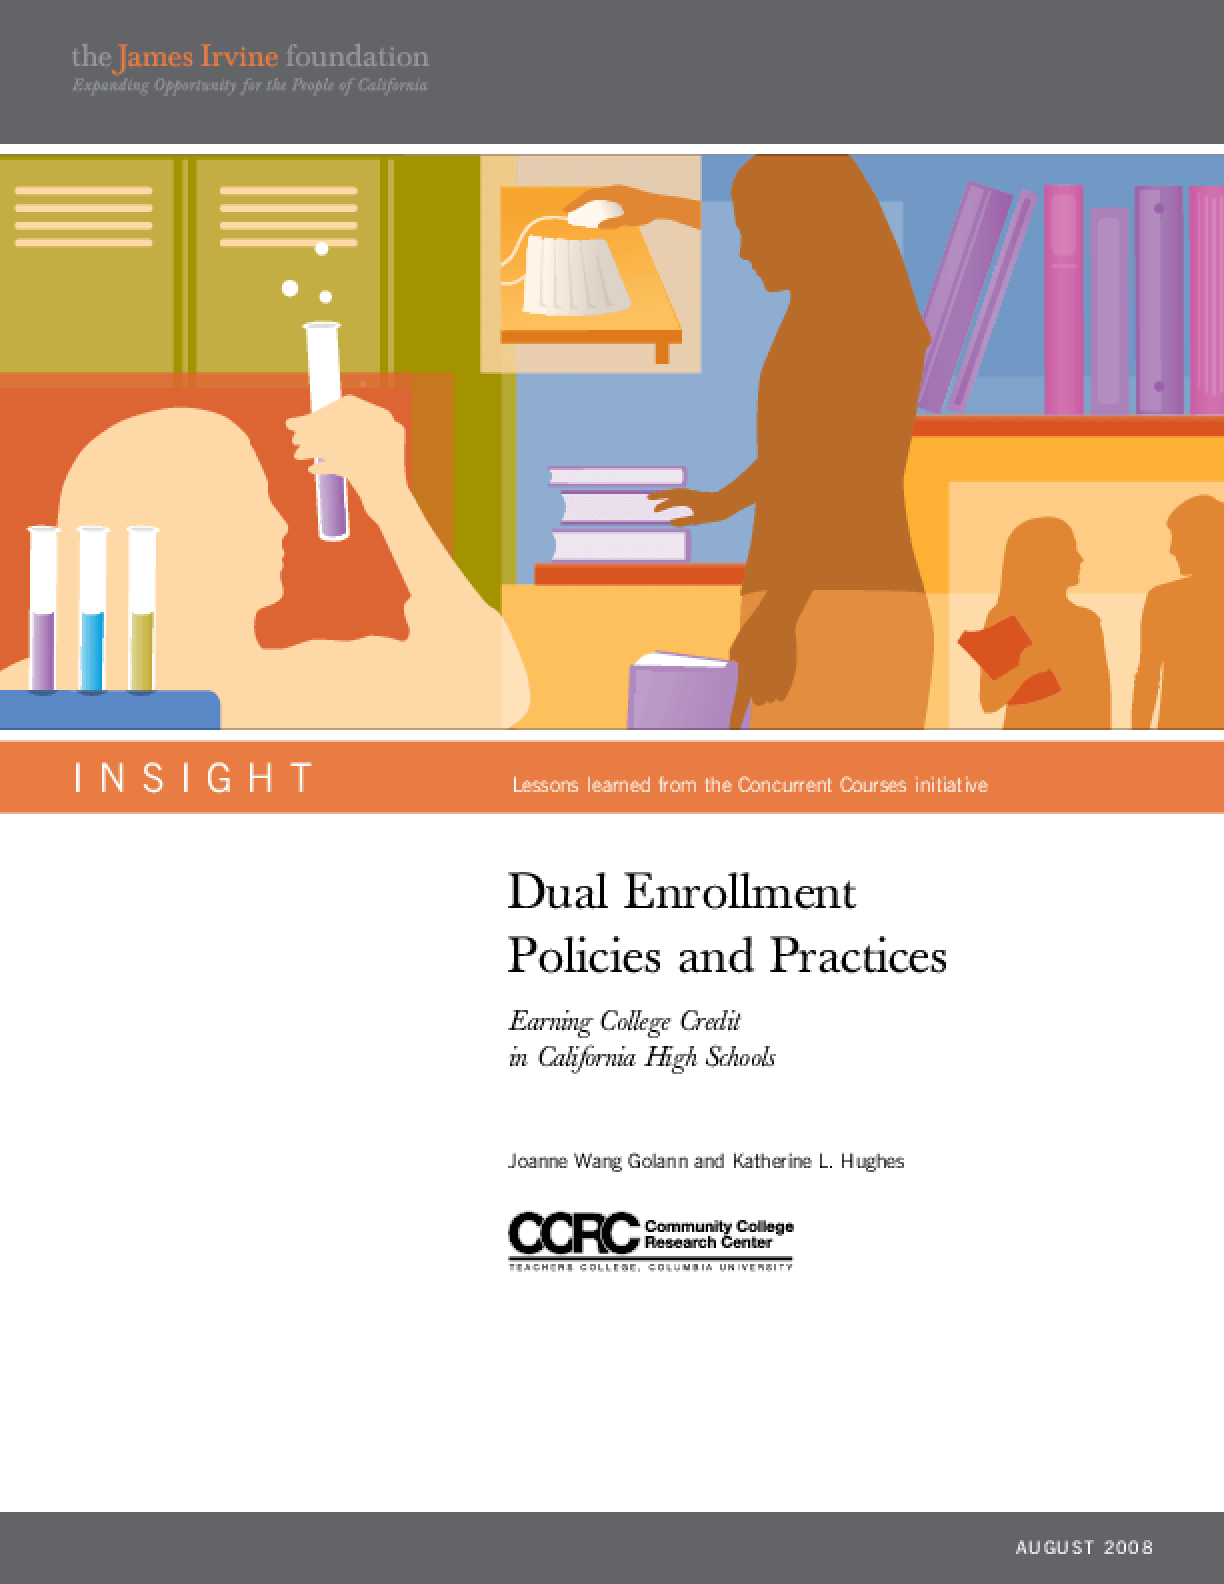 Dual Enrollment Policies and Practices